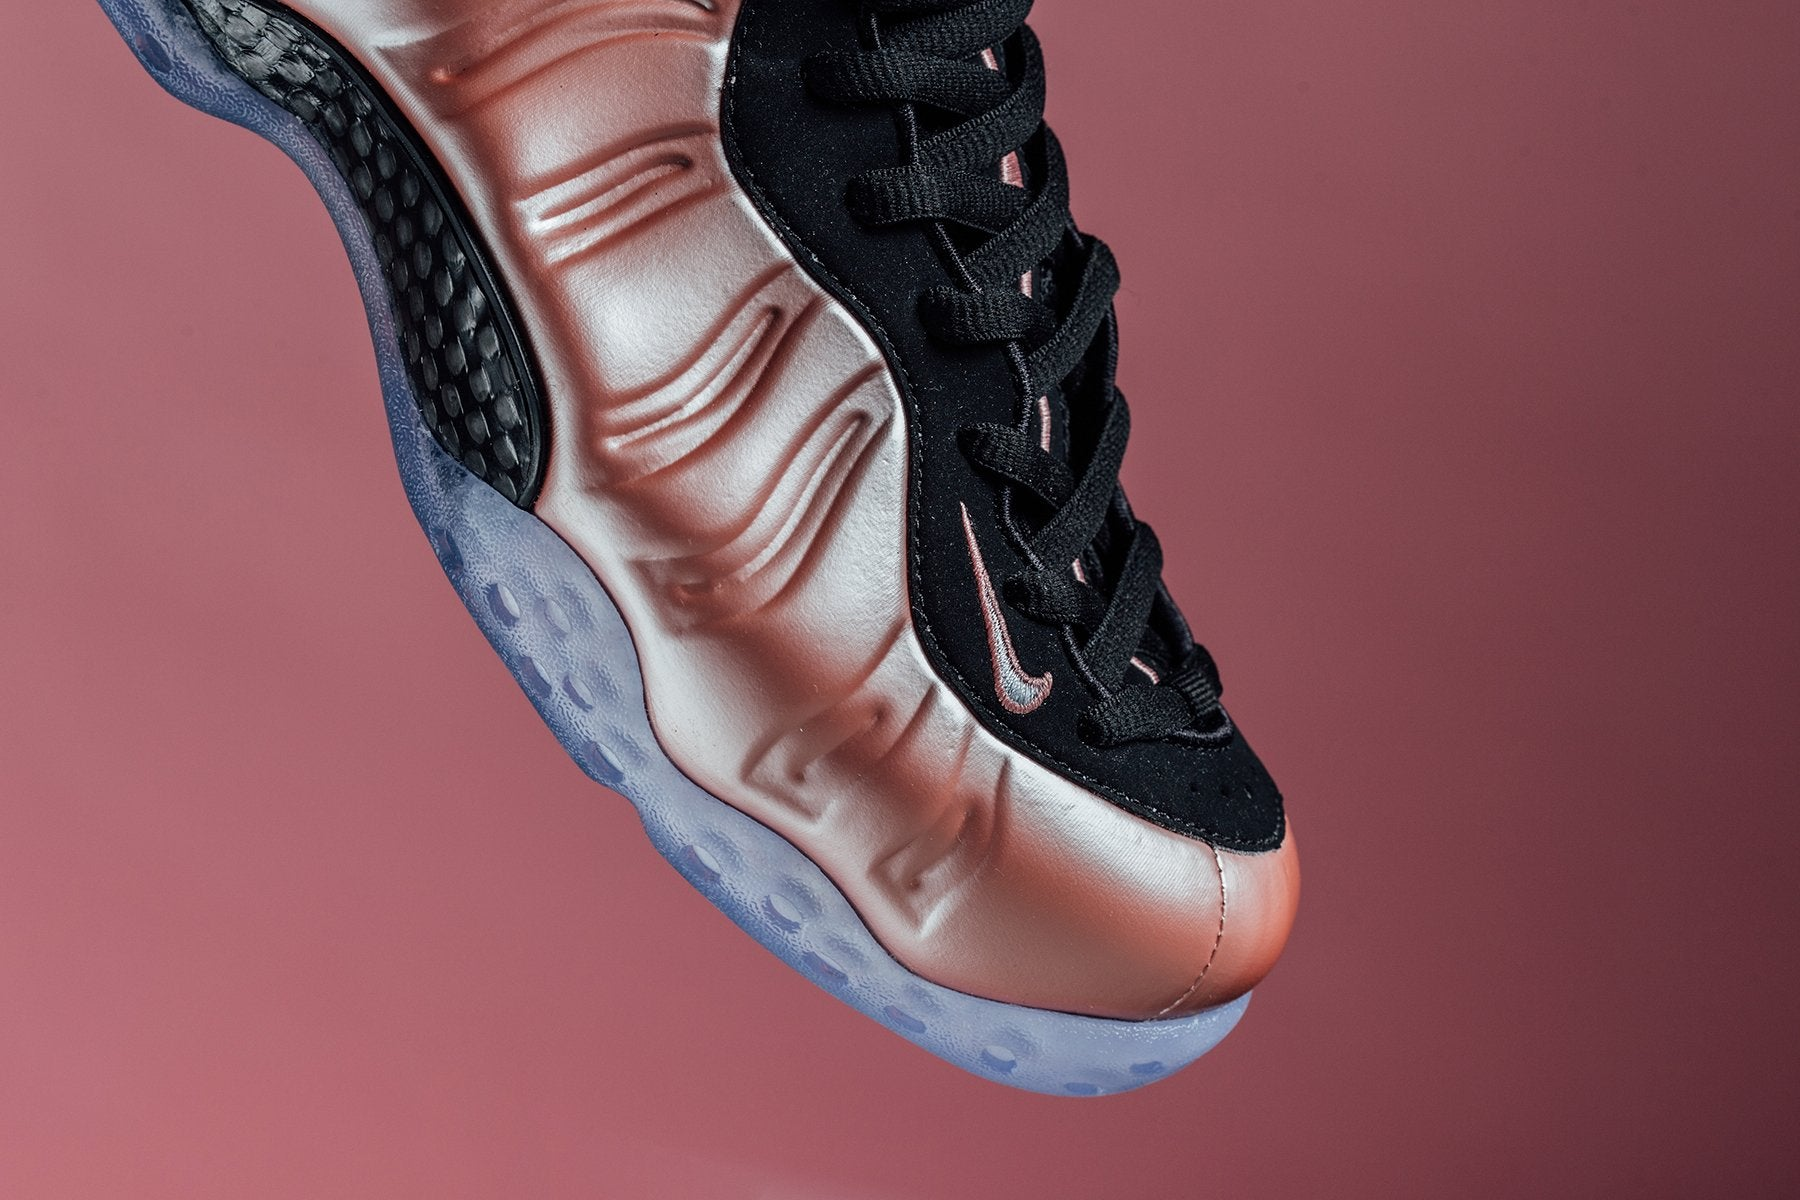 Nike Air Foamposite One Elemental Rose Rust Pink Shoes ...